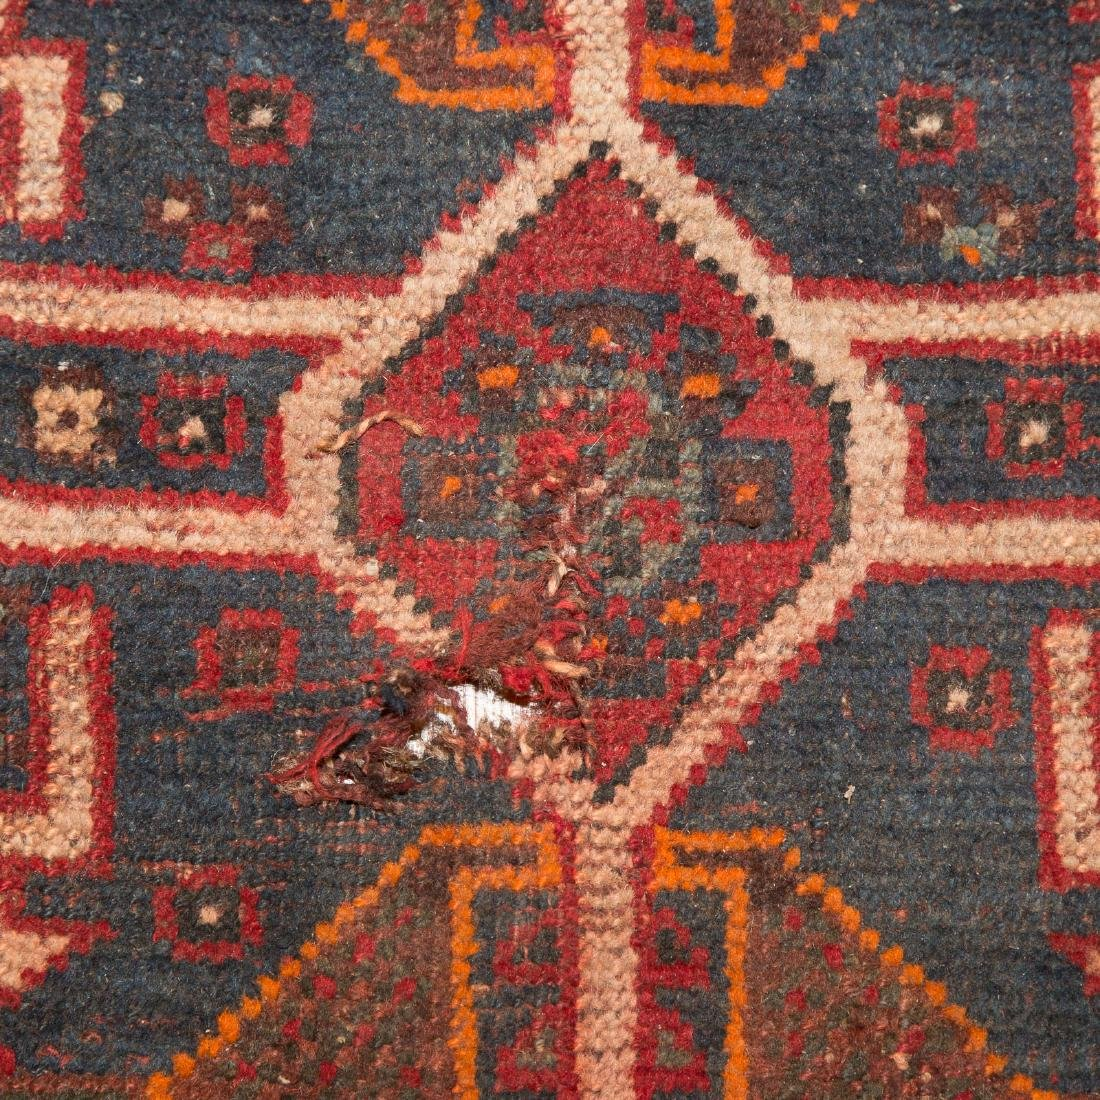 Antique Shiraz rug, approx. 7.8 x 10.4 - 4